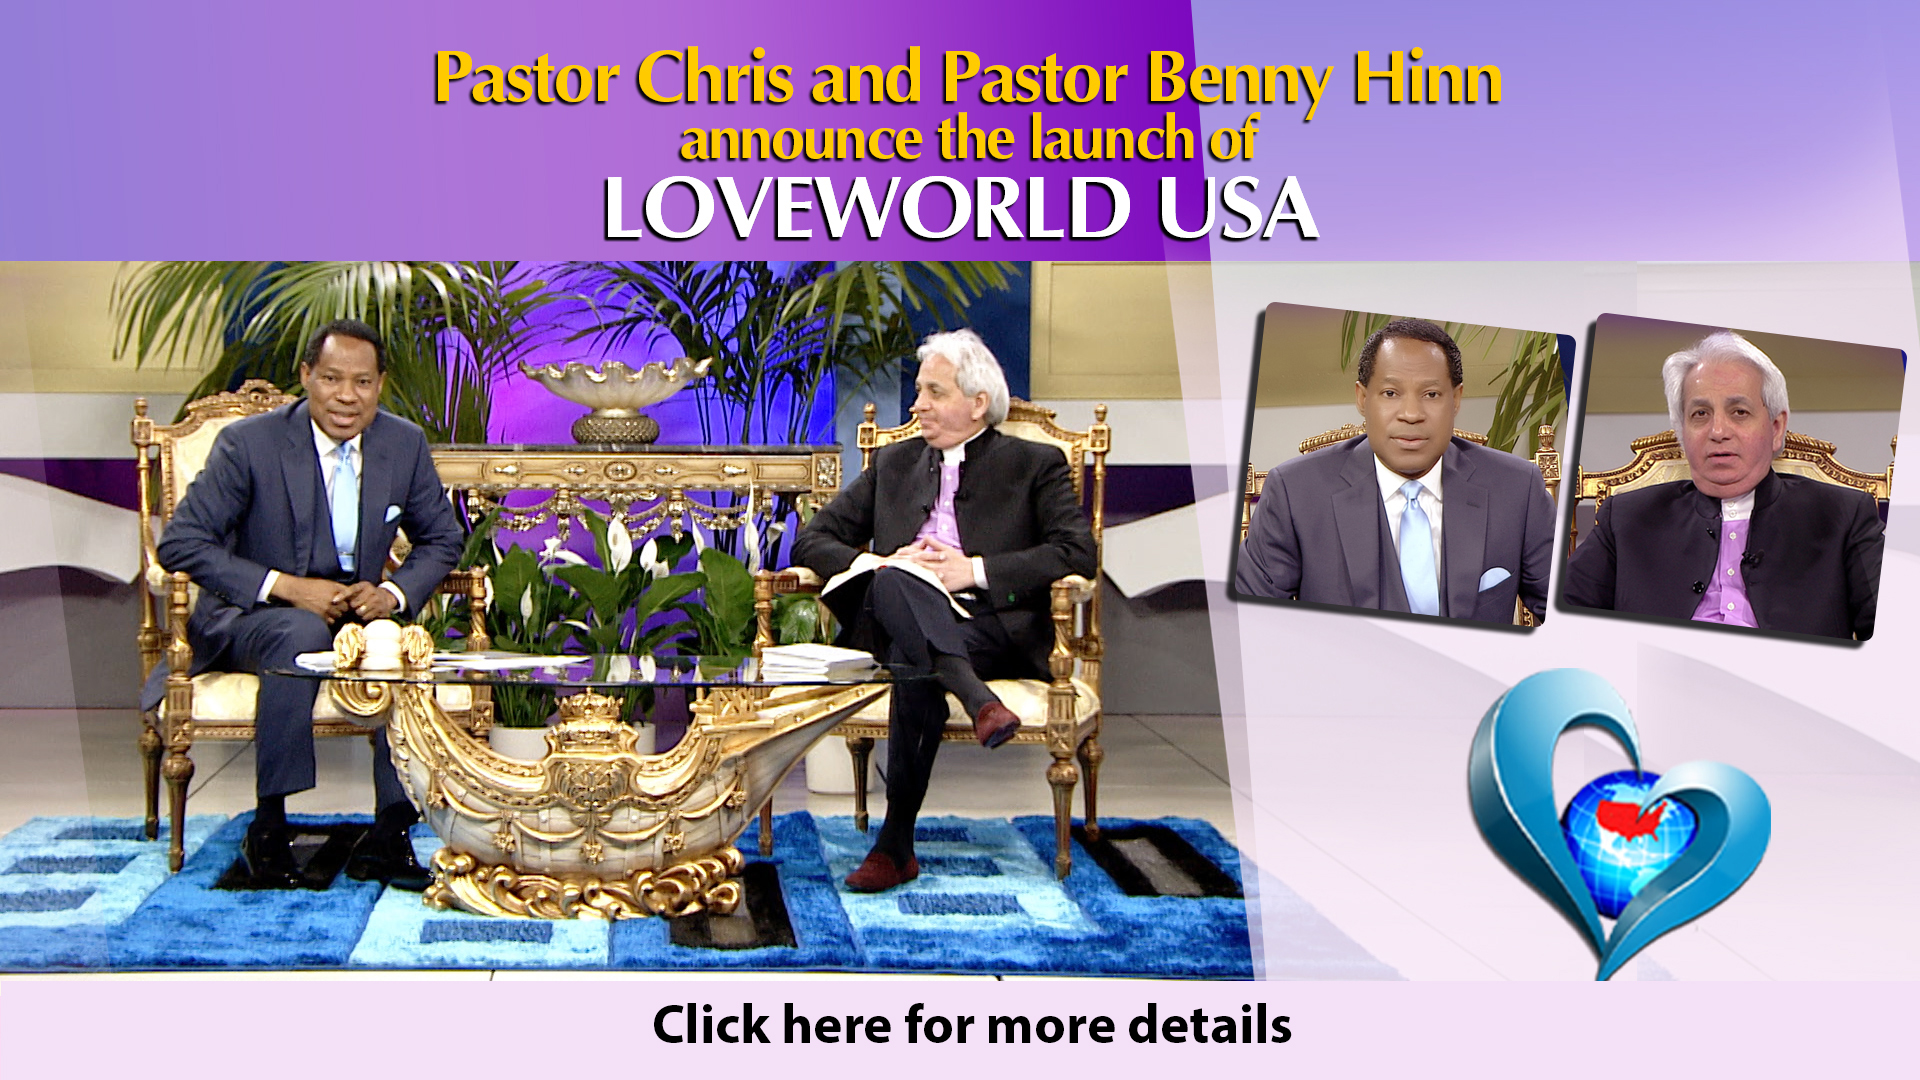 Pastor Chris and Pastor Benny Announces the Lunch Loveworld USA